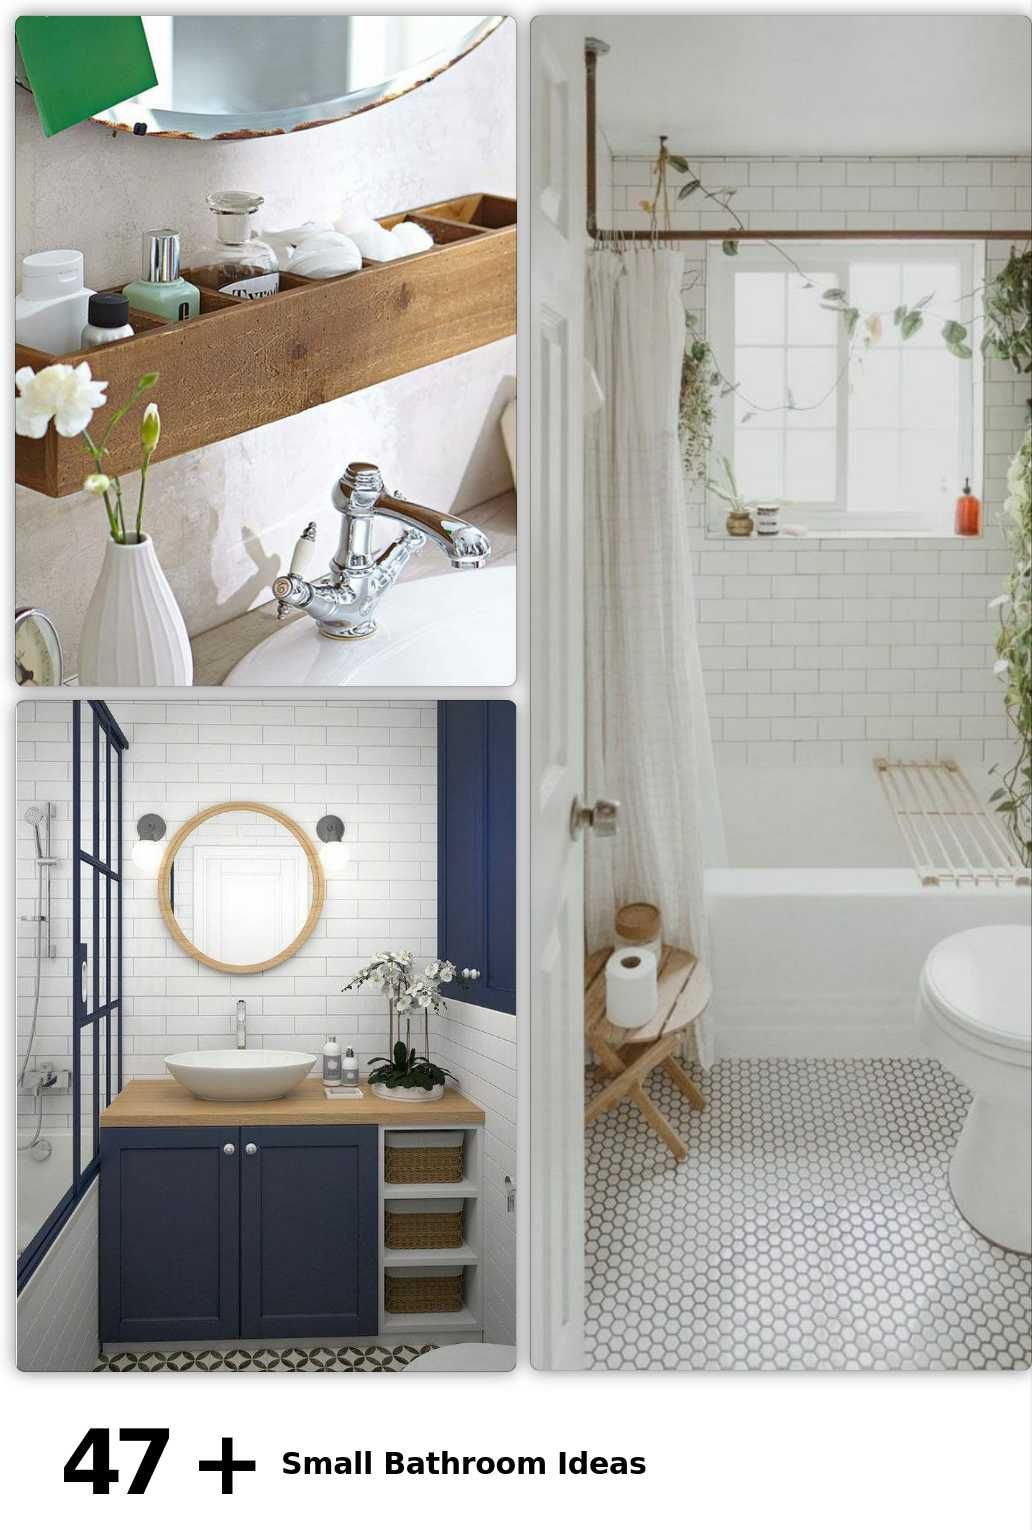 47 Small Bathroom Ideas In 2020 Bathroom Decor Amazing Bathrooms Diy Bathroom